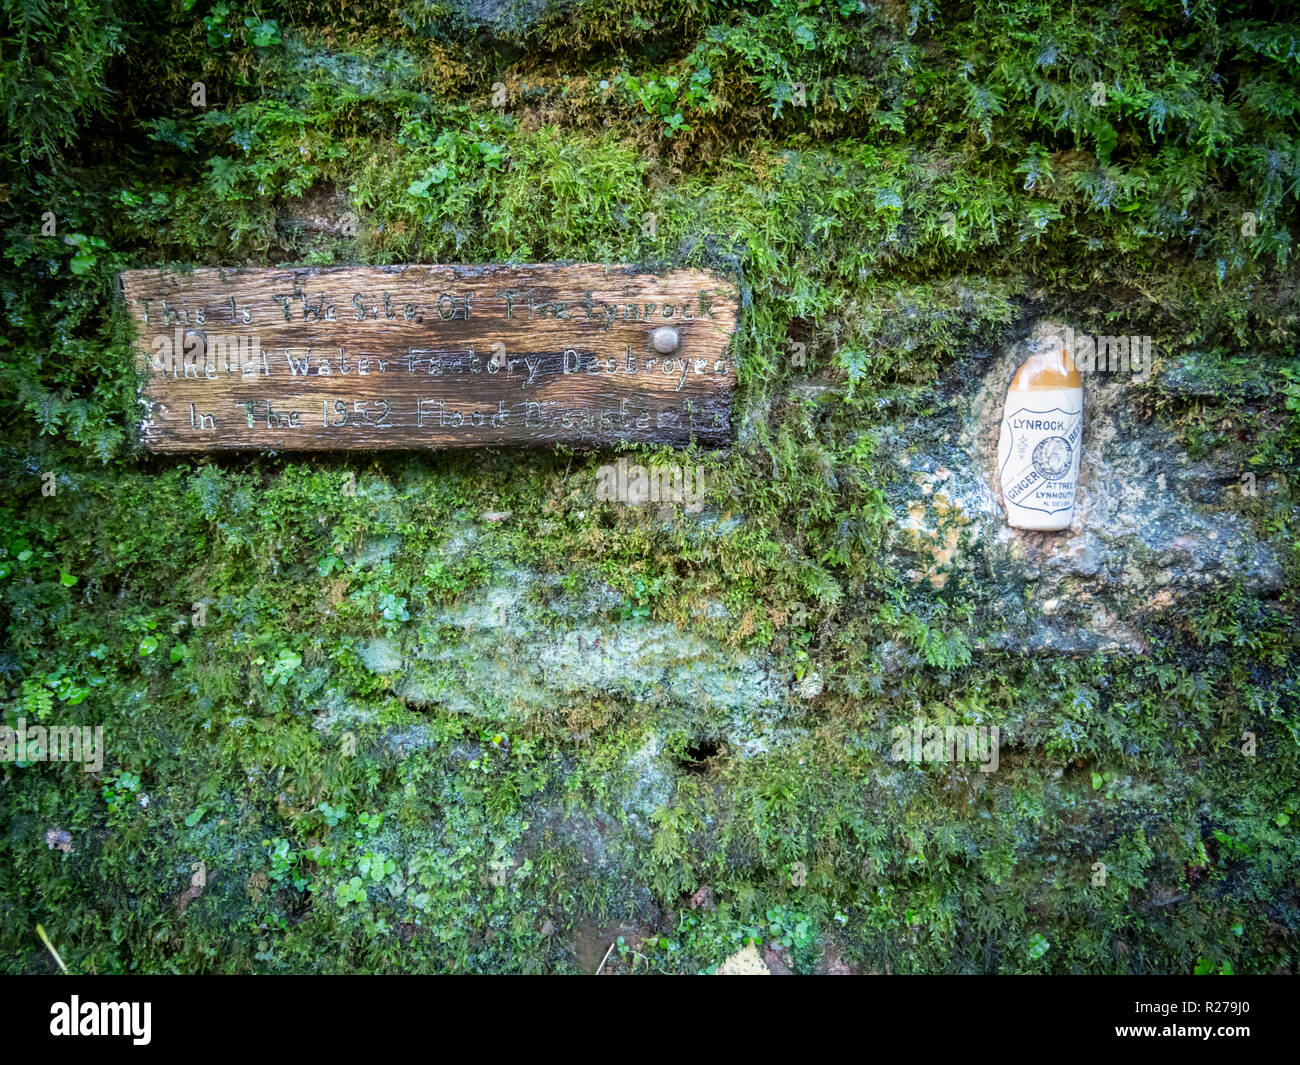 An old Lynrock ginger beer bottle set in a wall in the west Lyn River Valley  at Lynmouth, Exmoor, Devon UK on the site of an old mineral water factor - Stock Image